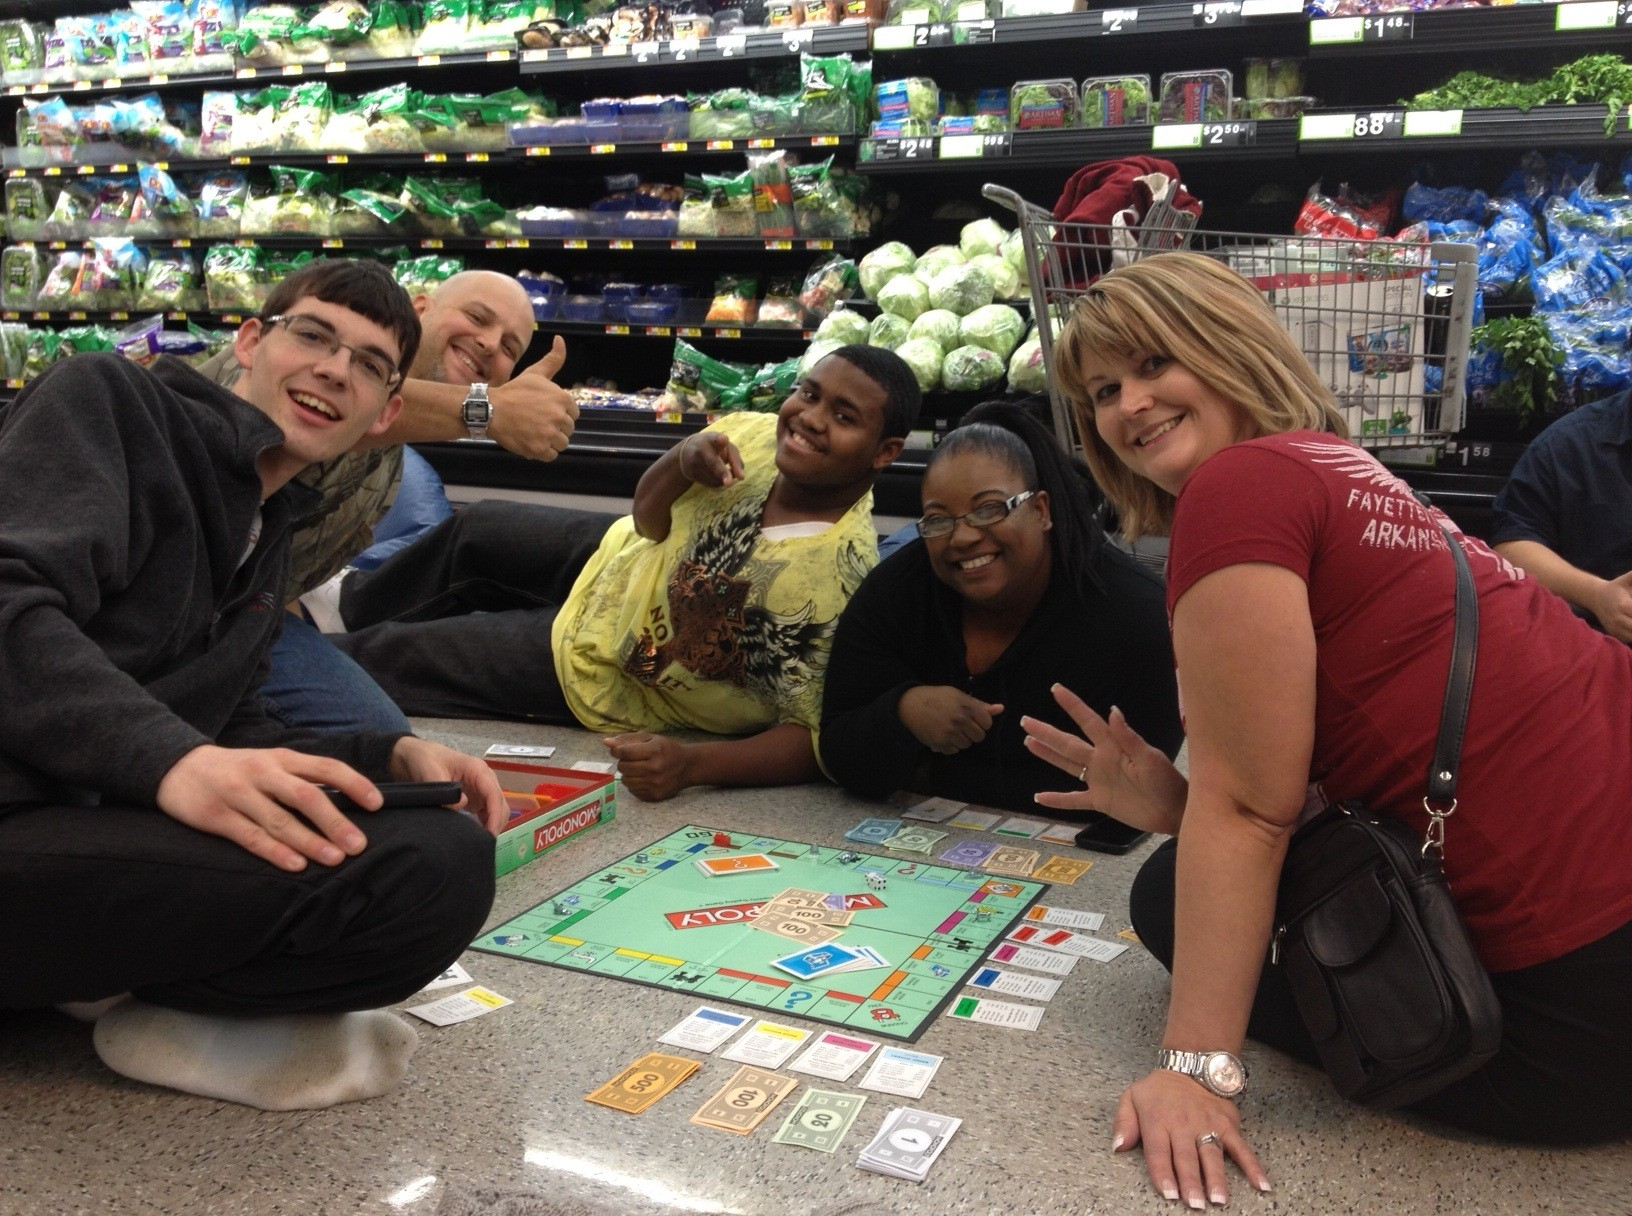 A Group Waiting for TVs at Van Buren Passes Time by Playing Monopoly. Courtesy: Leanne Donelson